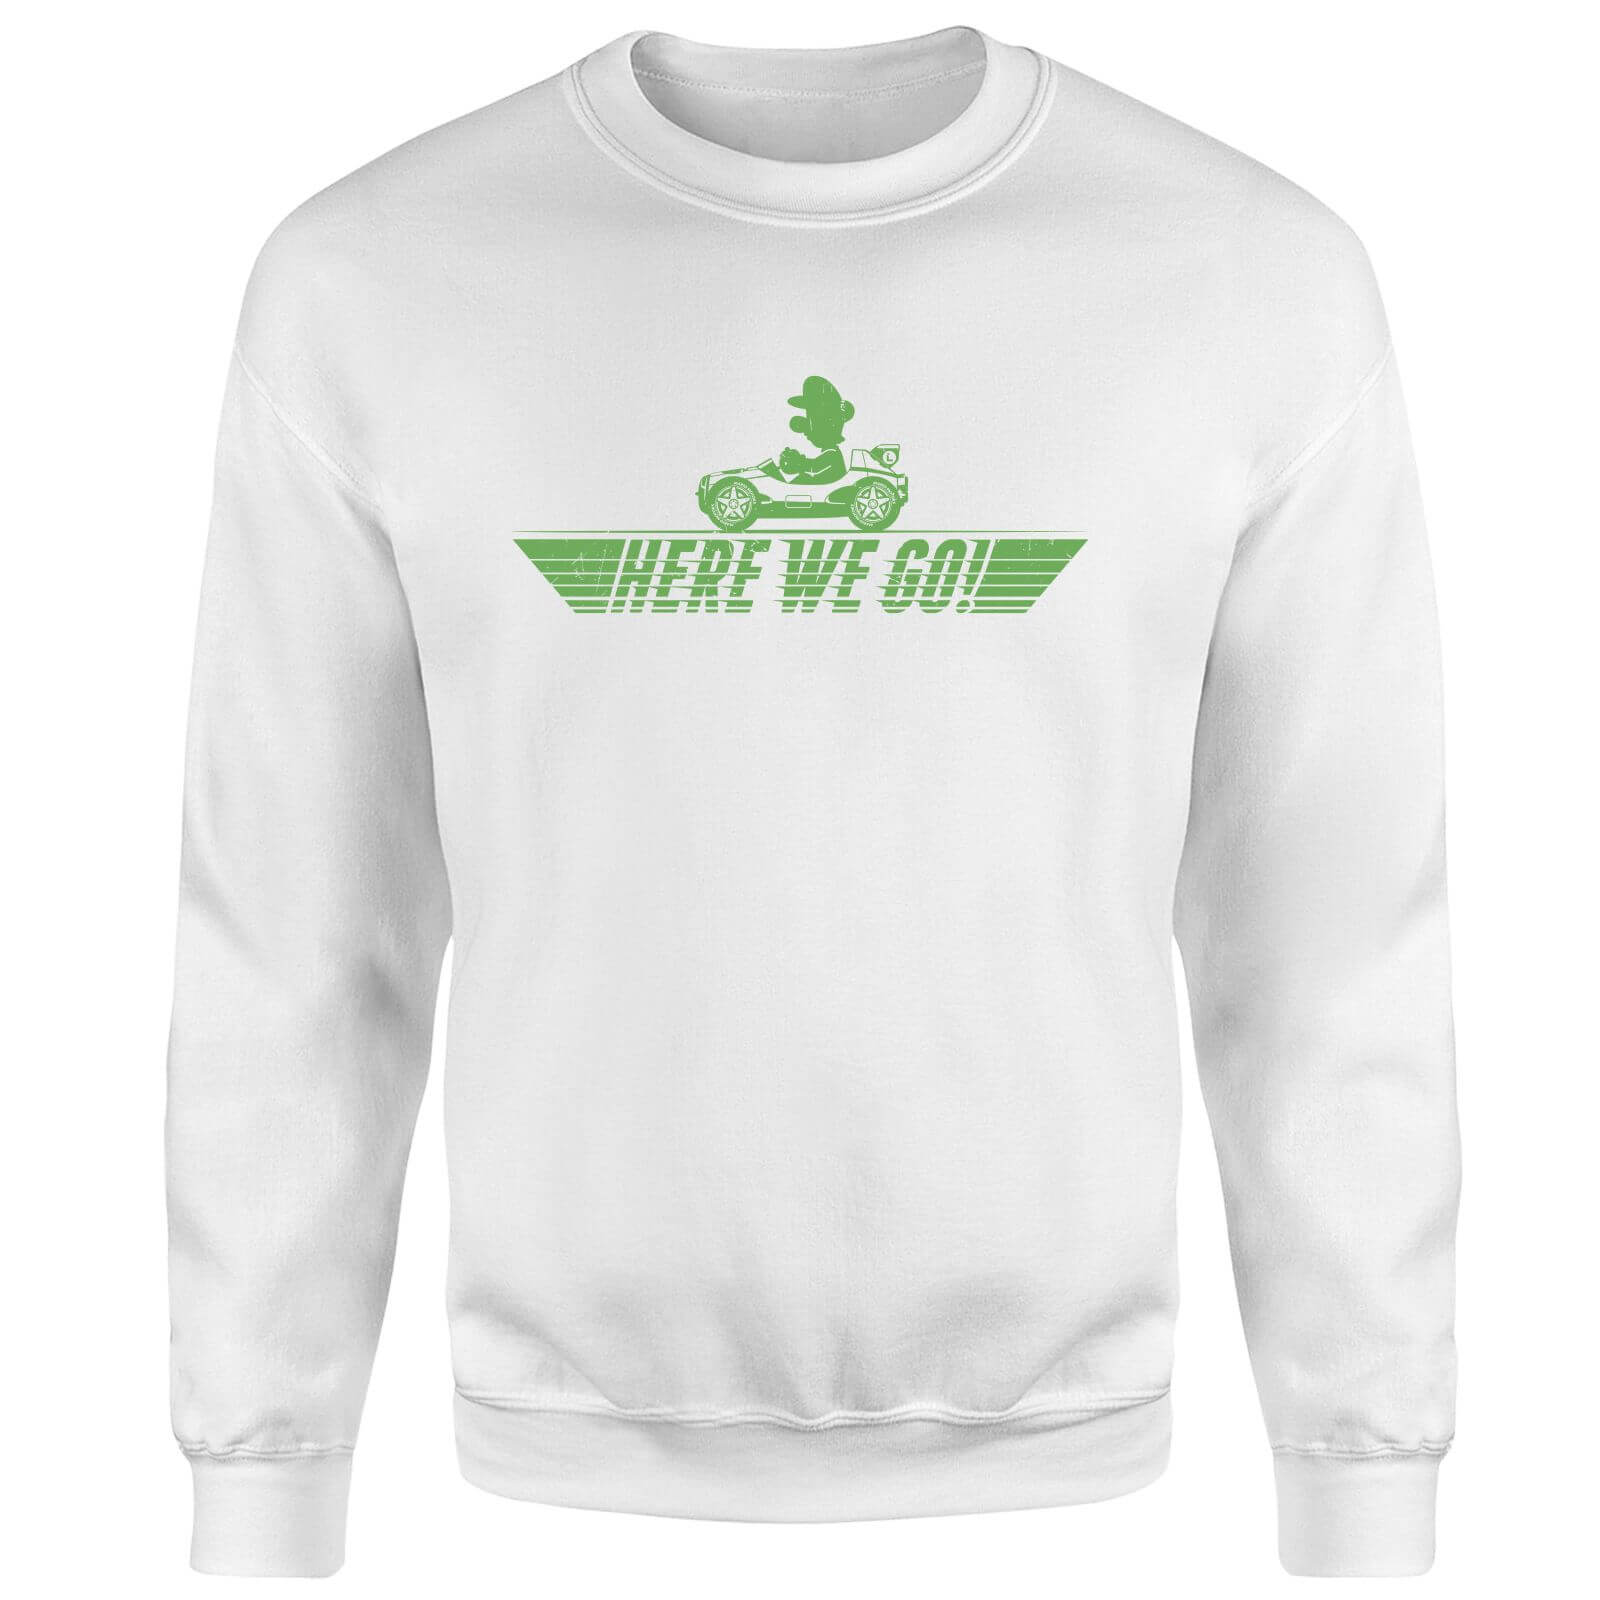 Mario Kart Here We Go Luigi Sweatshirt - White